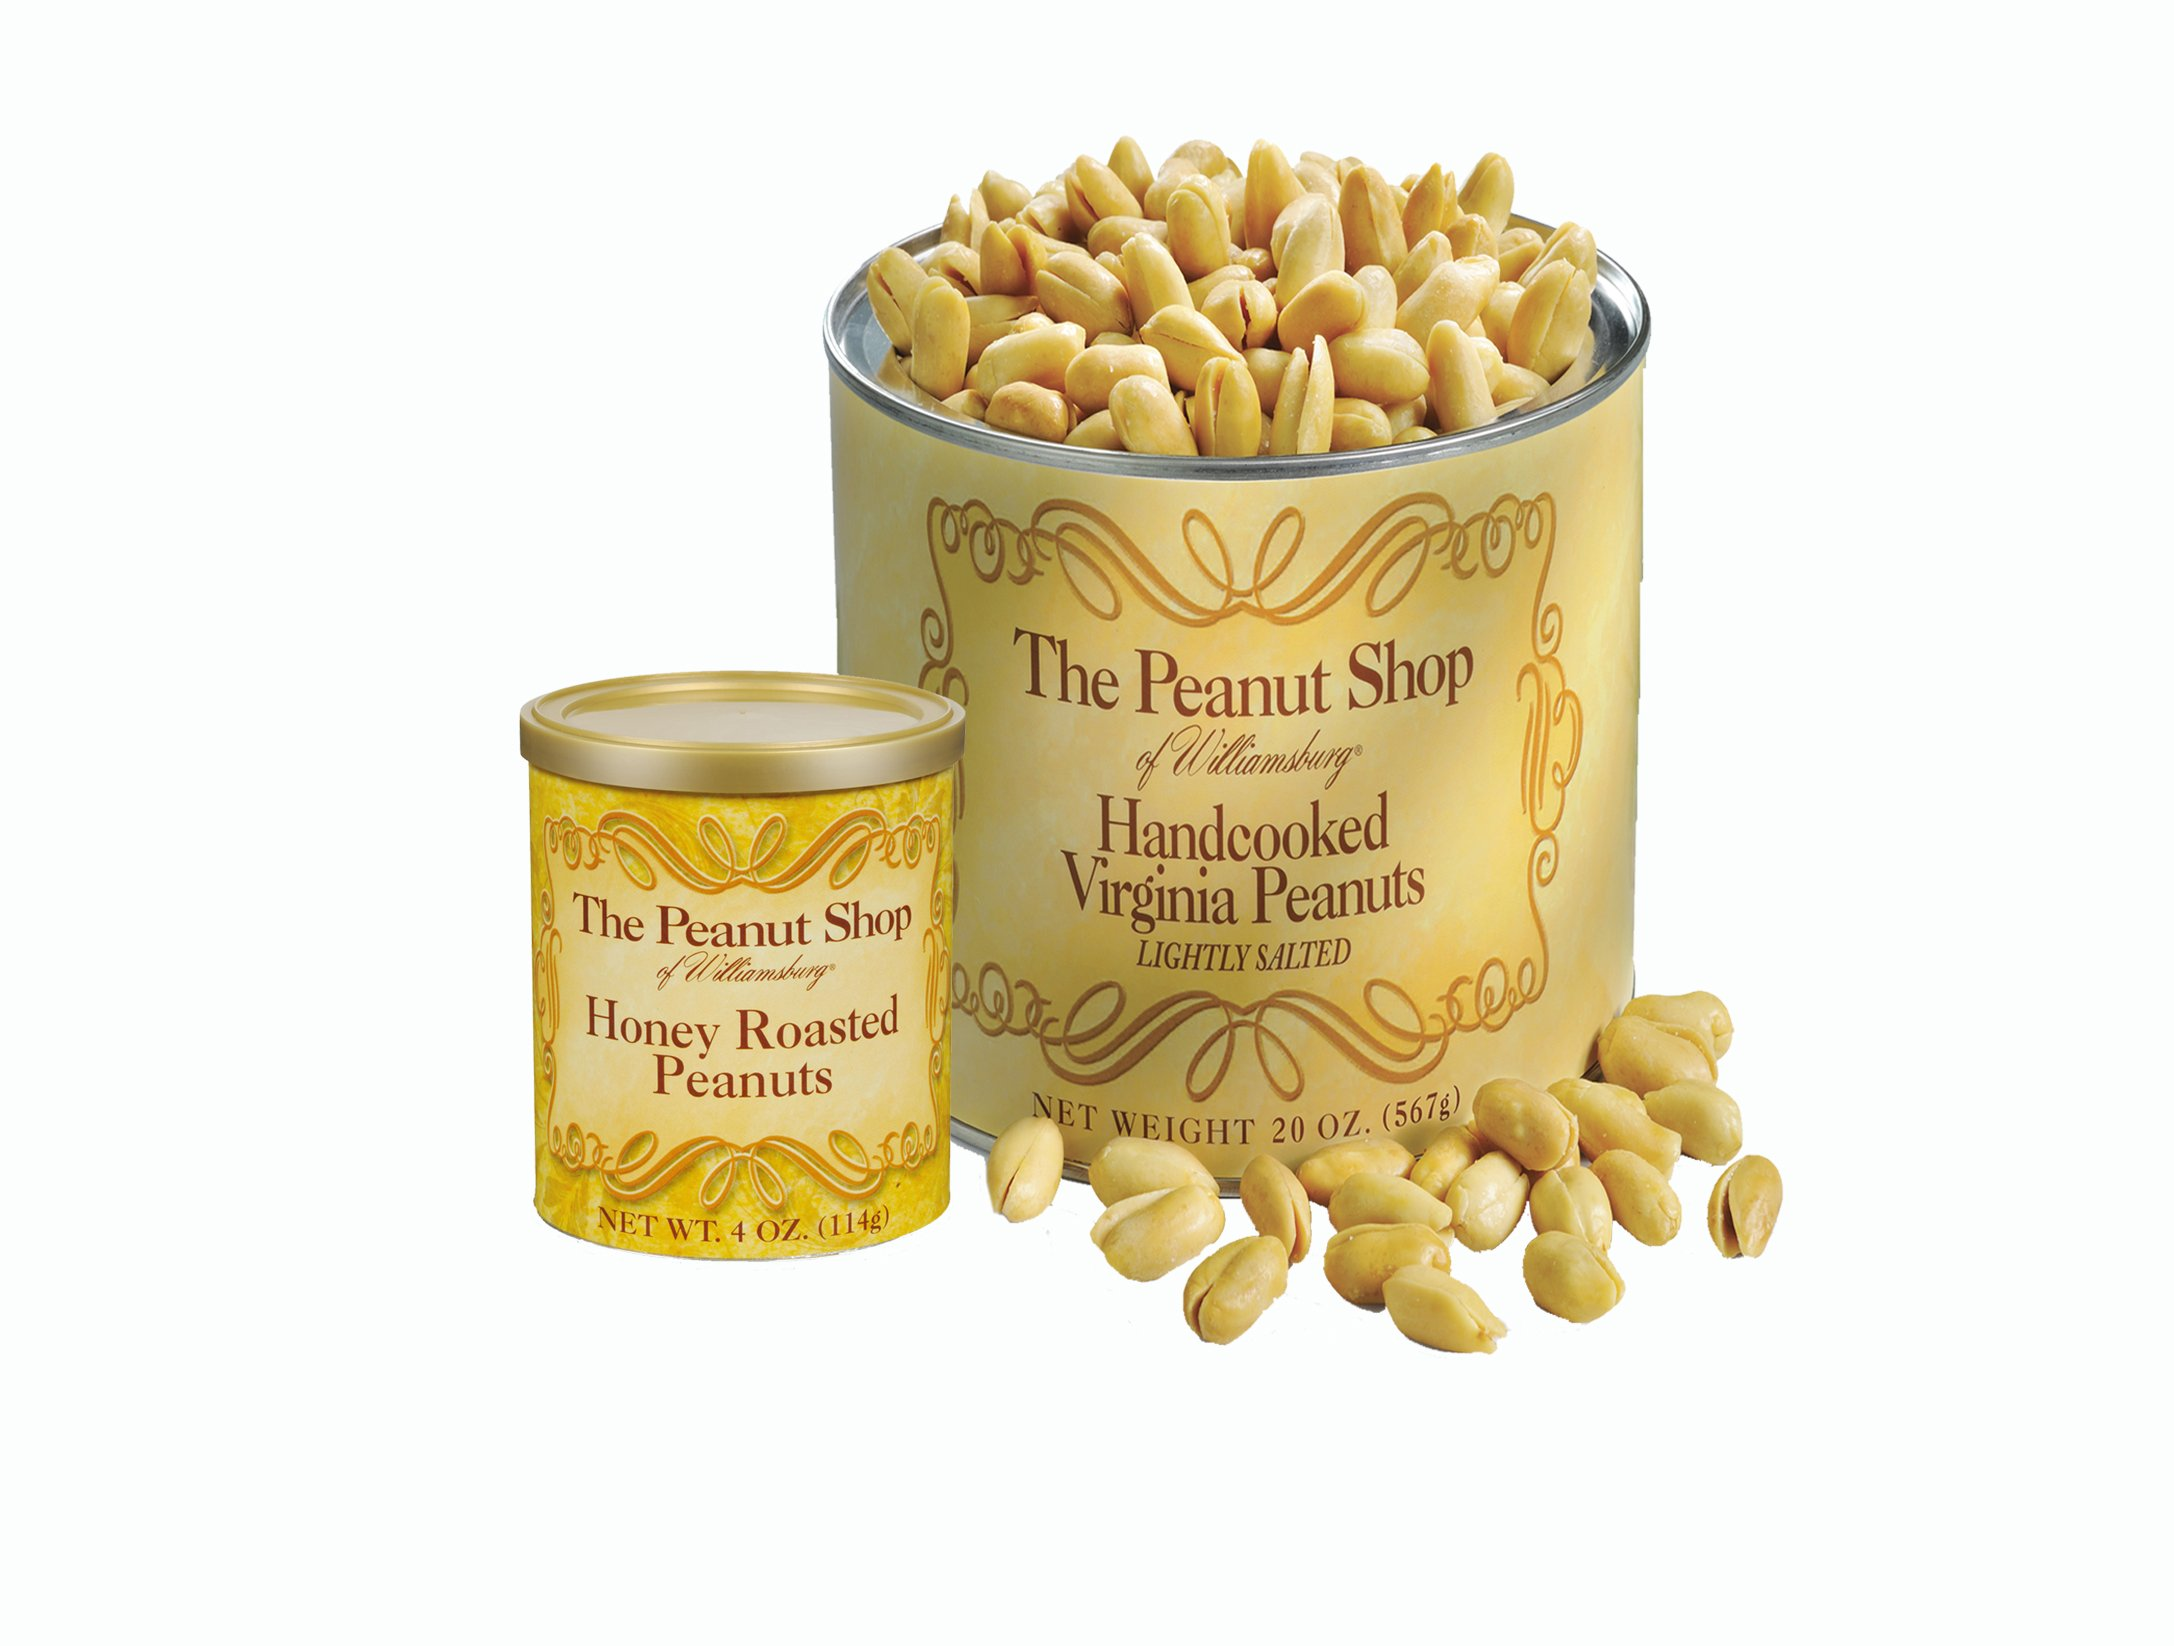 The Peanut Shop of Williamsburg Handcooked Virginia Peanuts, Lightly Salted, 20 Ounce & Honey Roasted, 4 Ounce